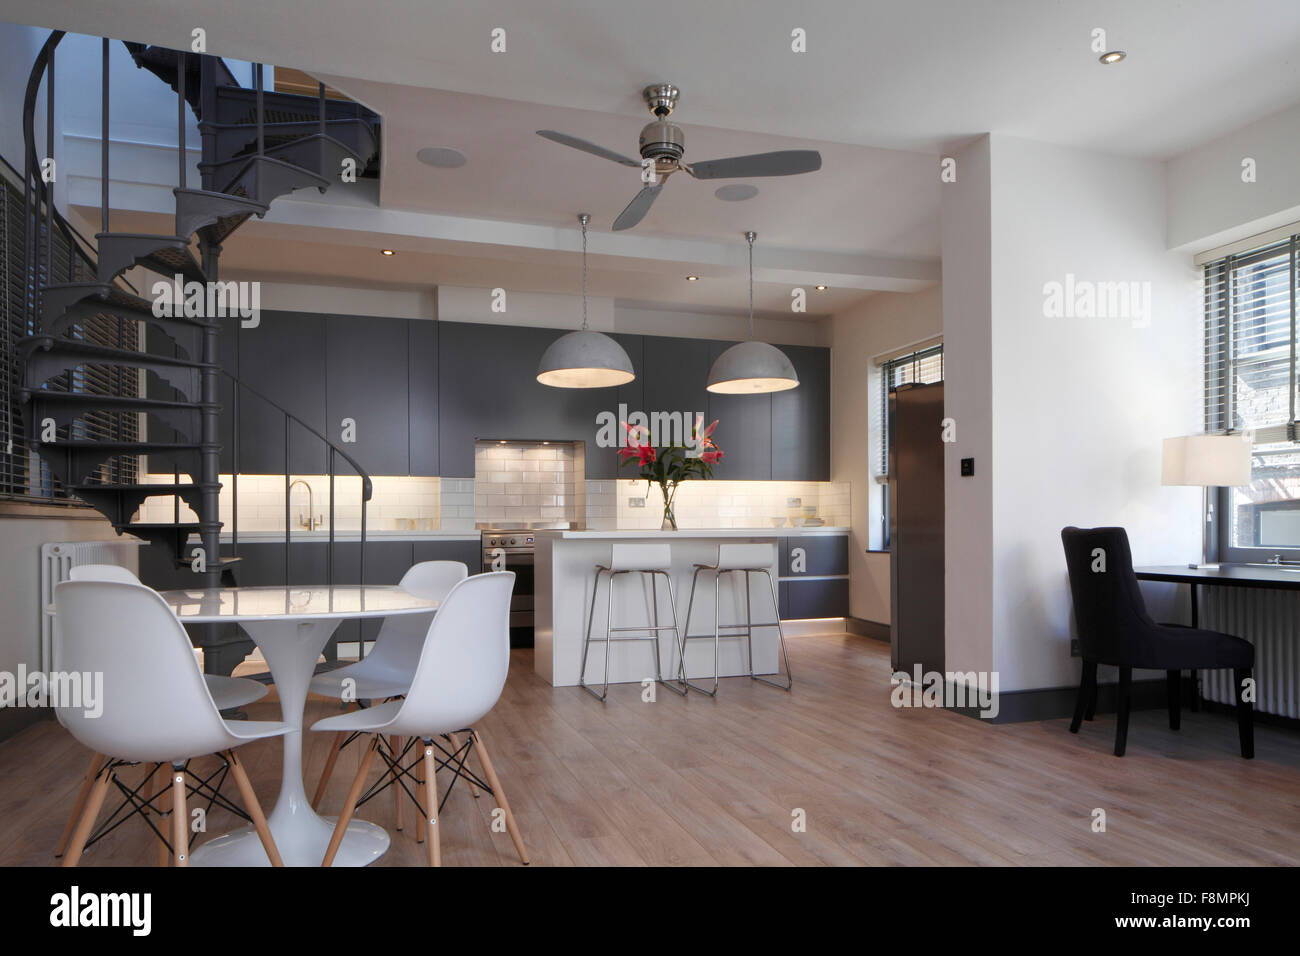 Wide Angle Of Living Space And Kitchen With Spiral Staircase Lights Stock Photo 91425926 Alamy